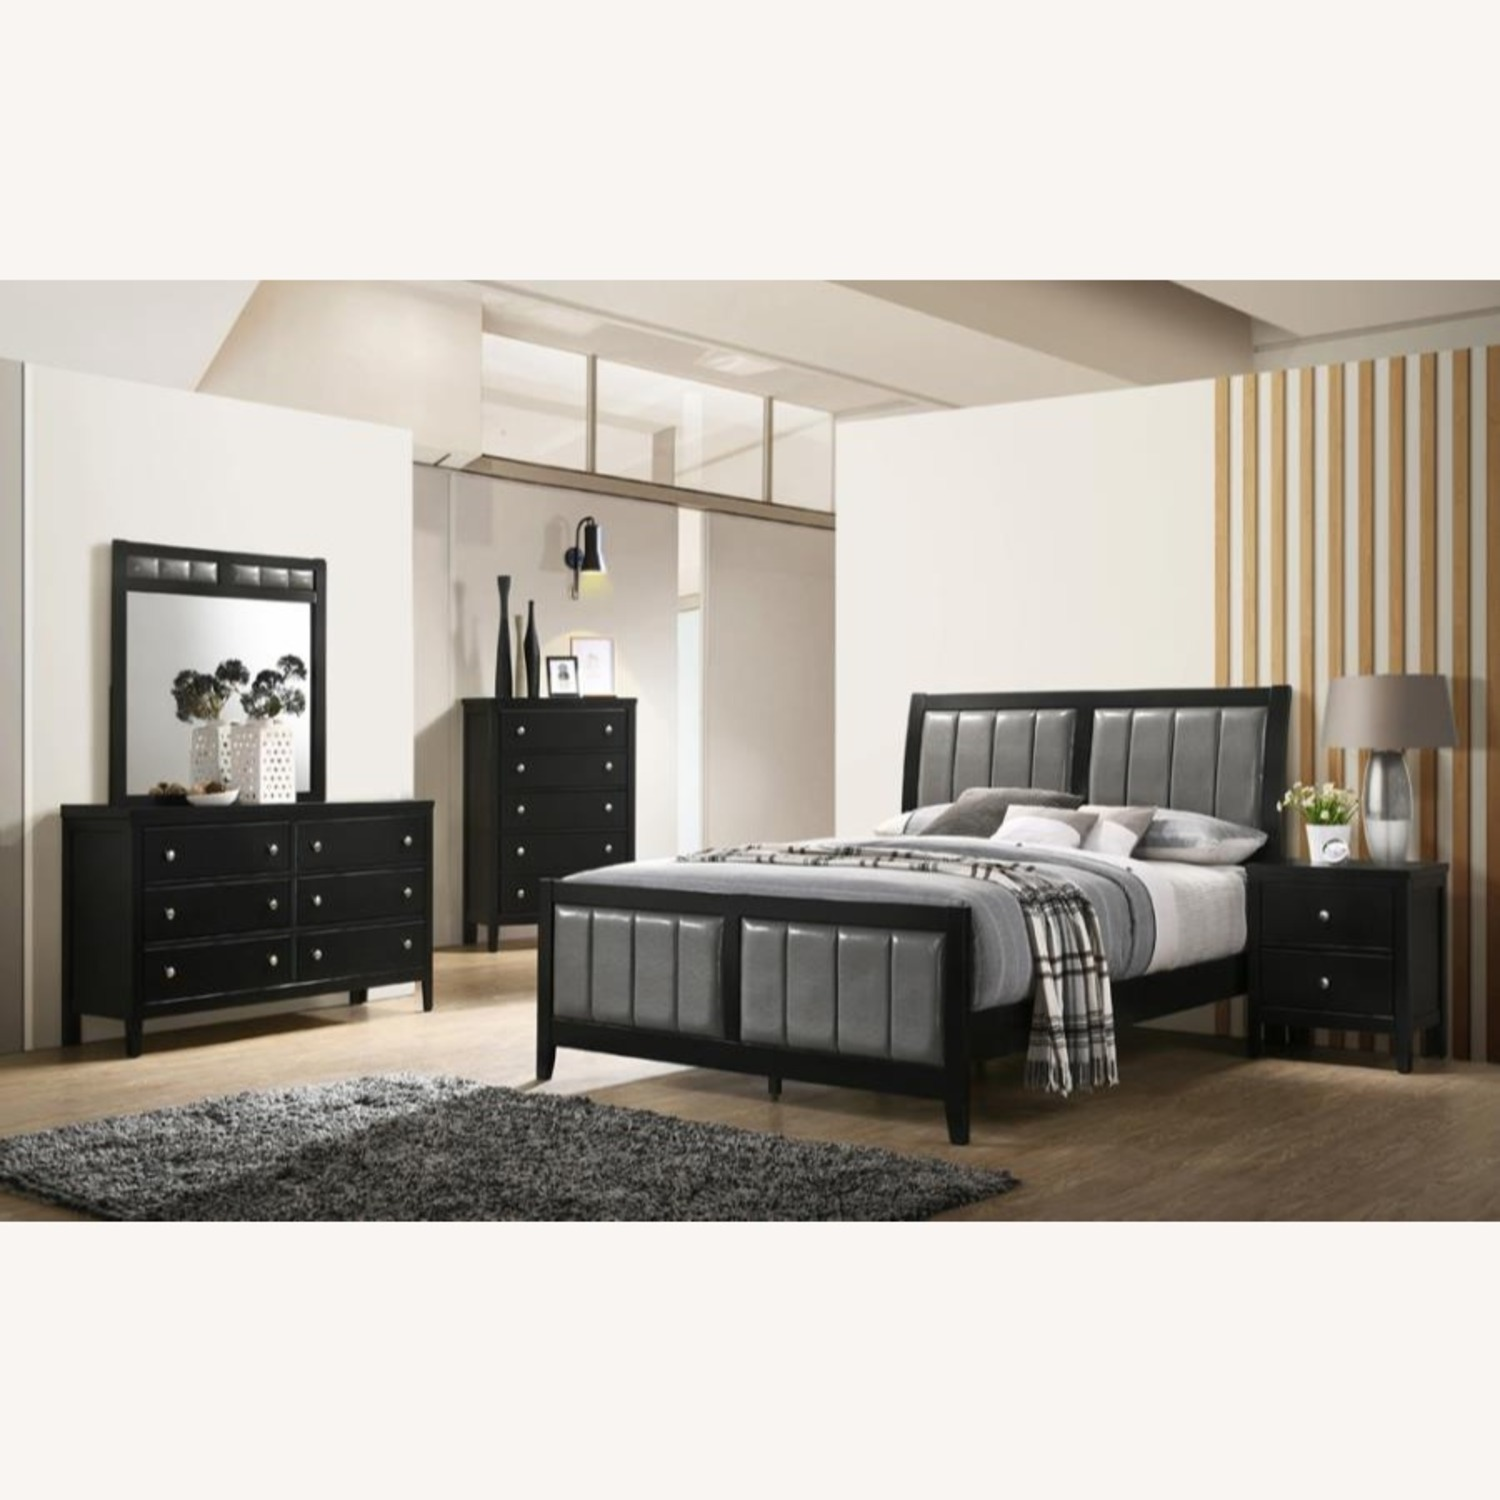 Full Bed In Grey Fabric W/ Black Wood Finish - image-2